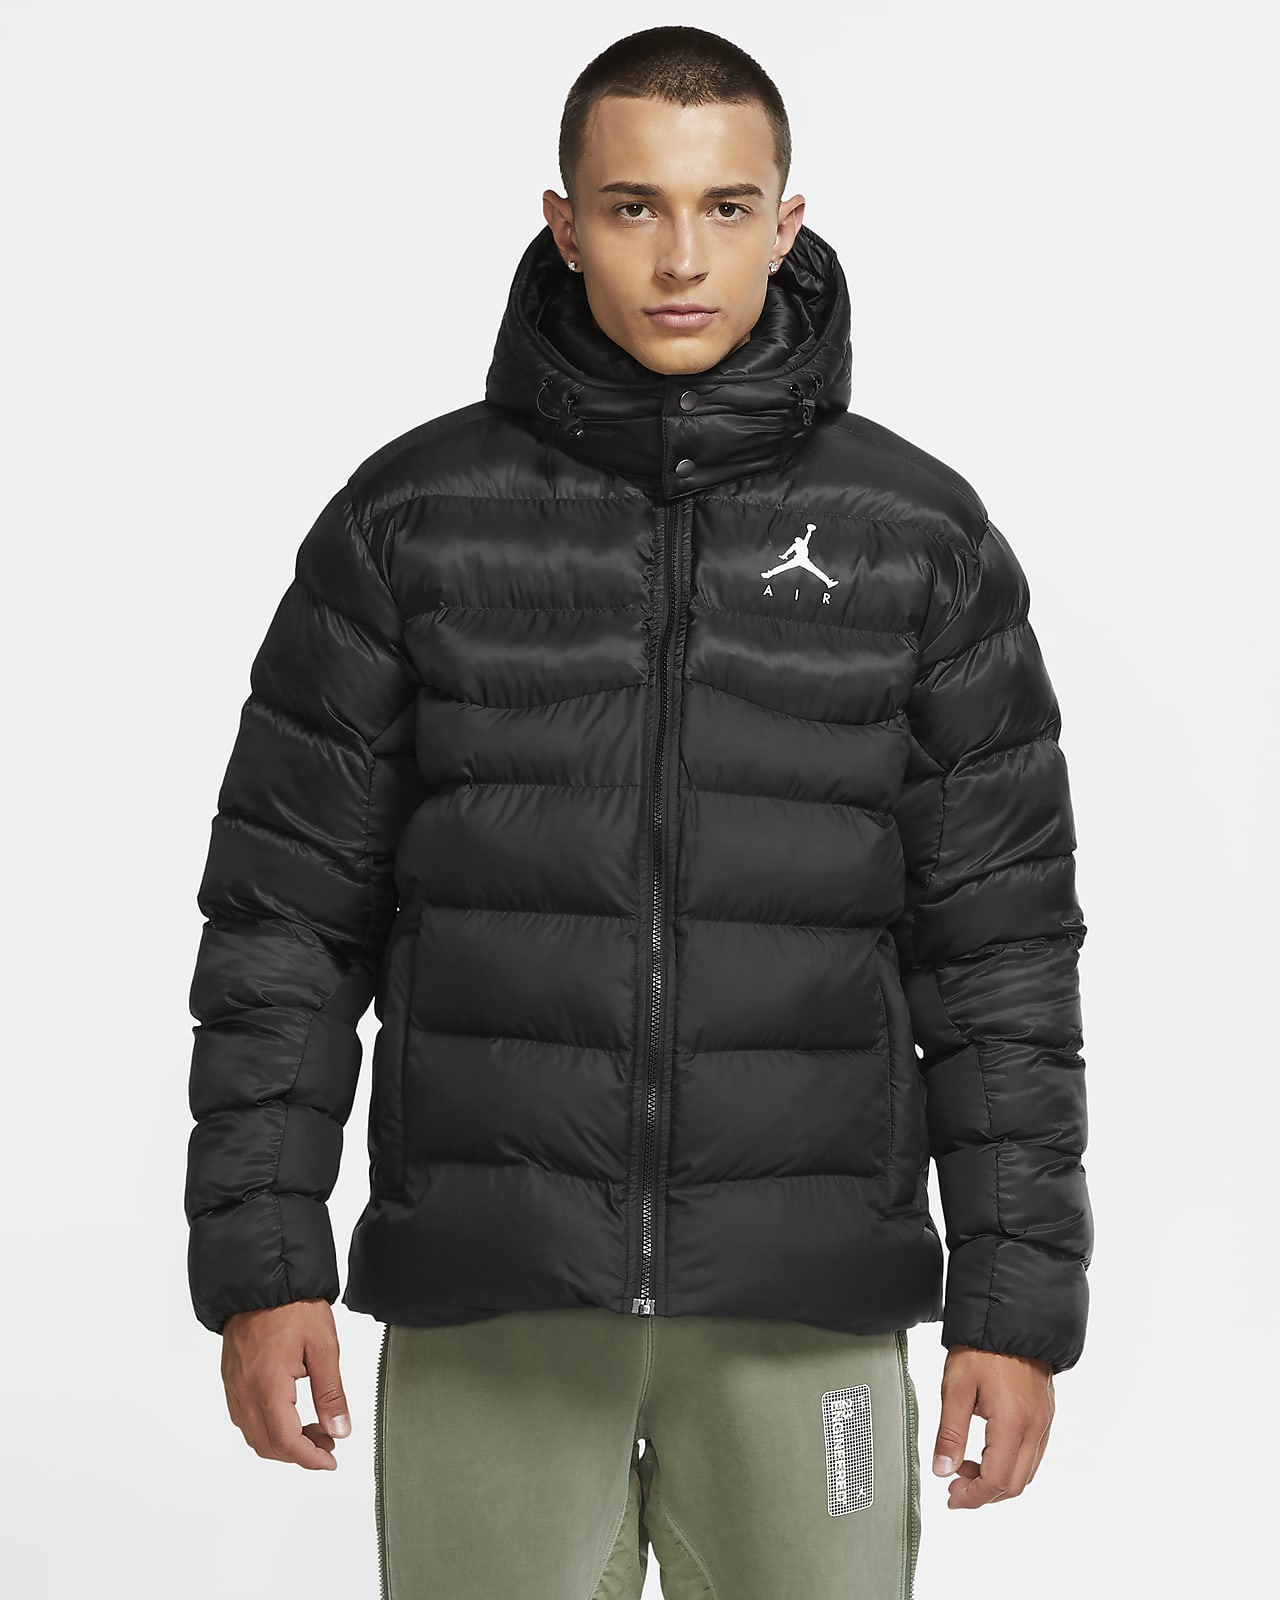 Jordan Jumpman Air Men's Puffer Jacket